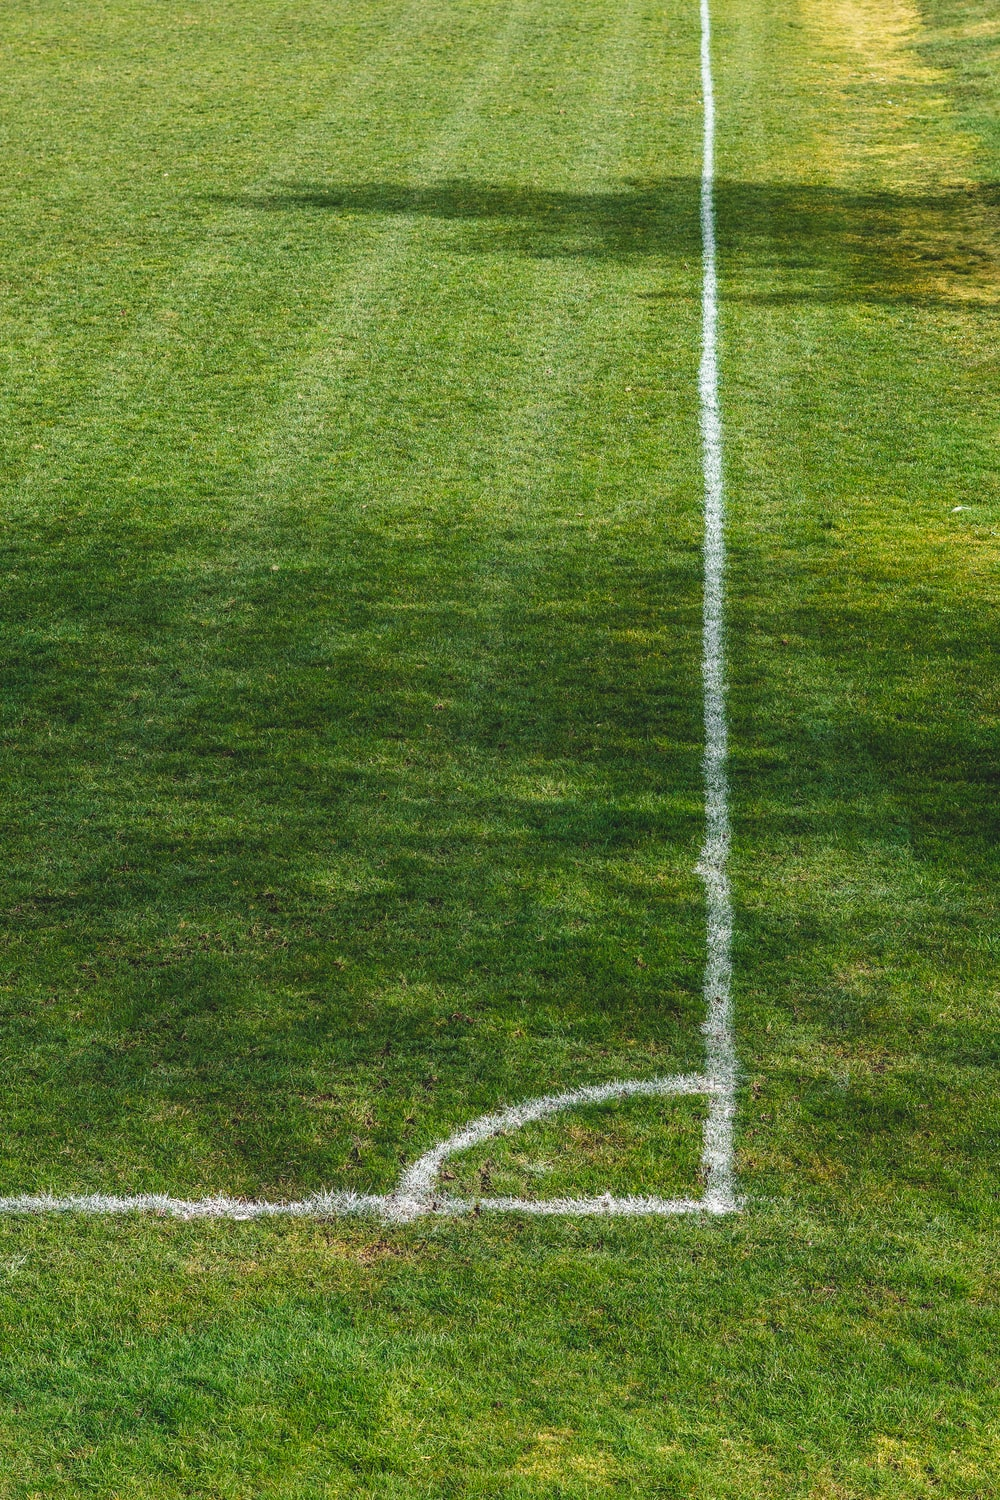 white soccer goal net on green grass field